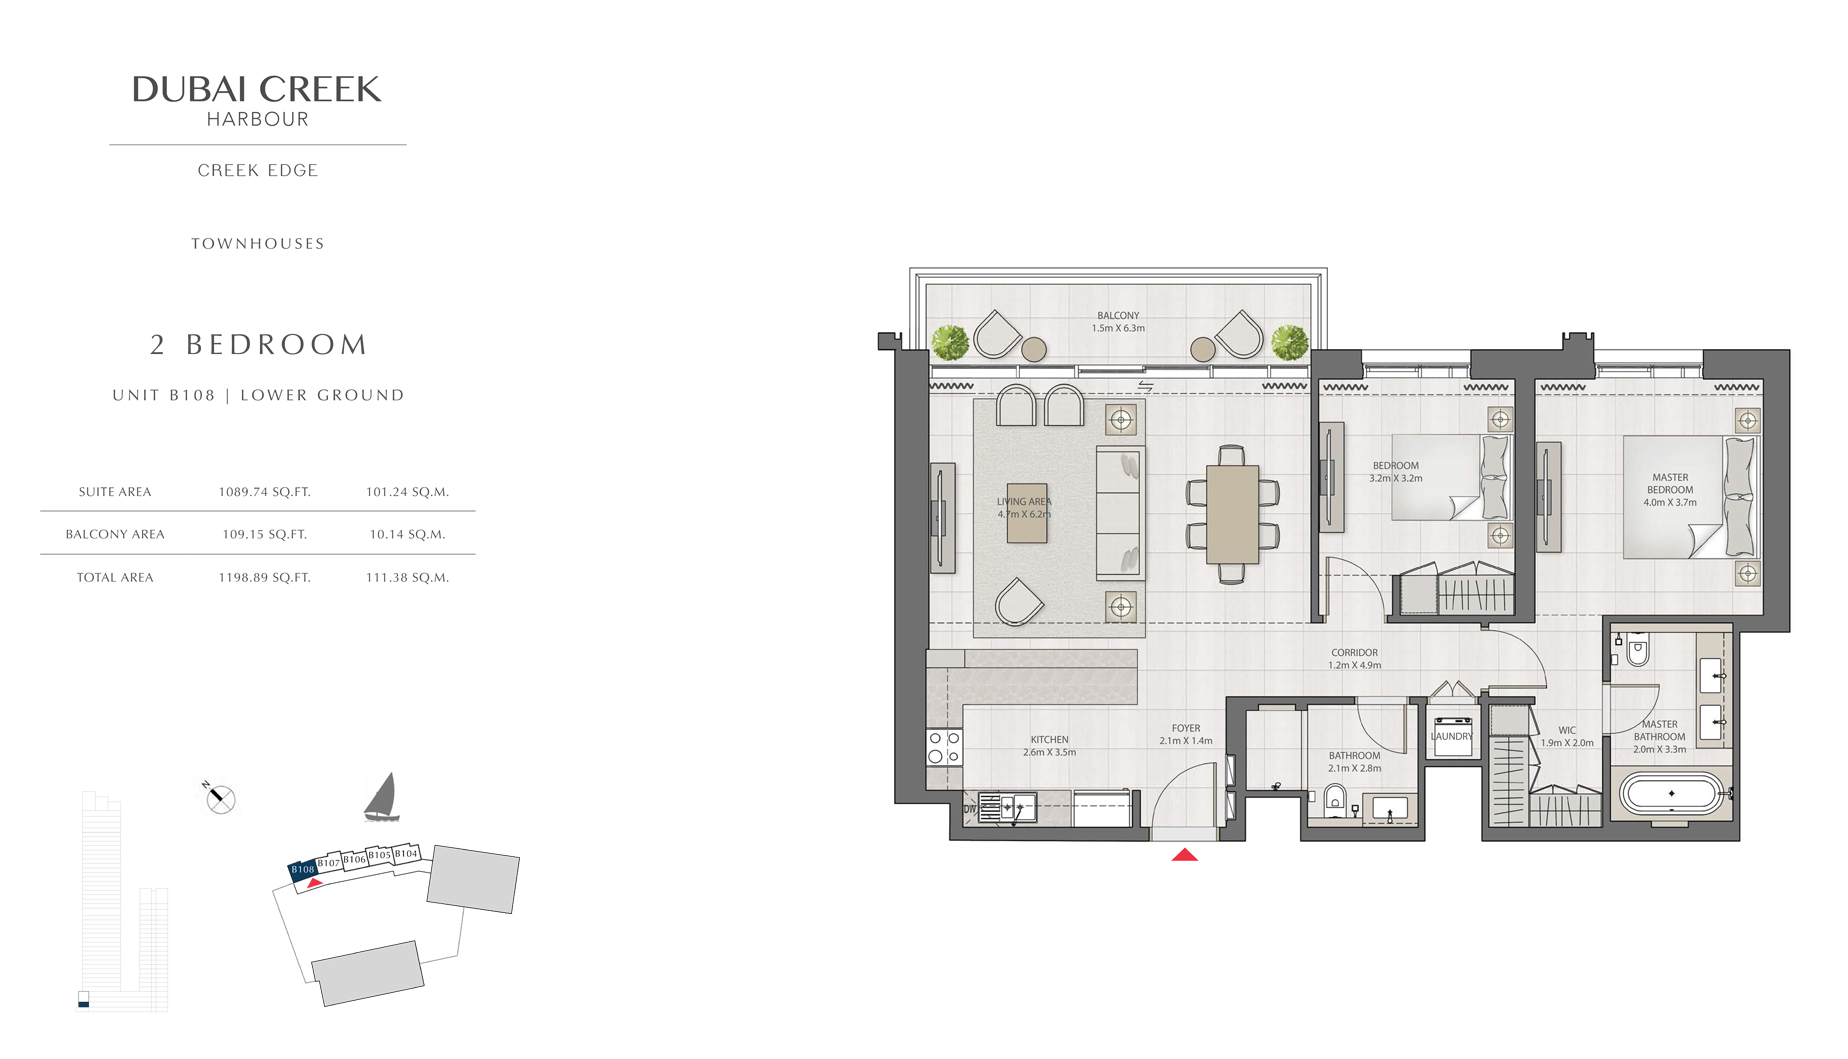 2 Bedroom Townhouses Unit B108 Level G Size 1198 sq.ft